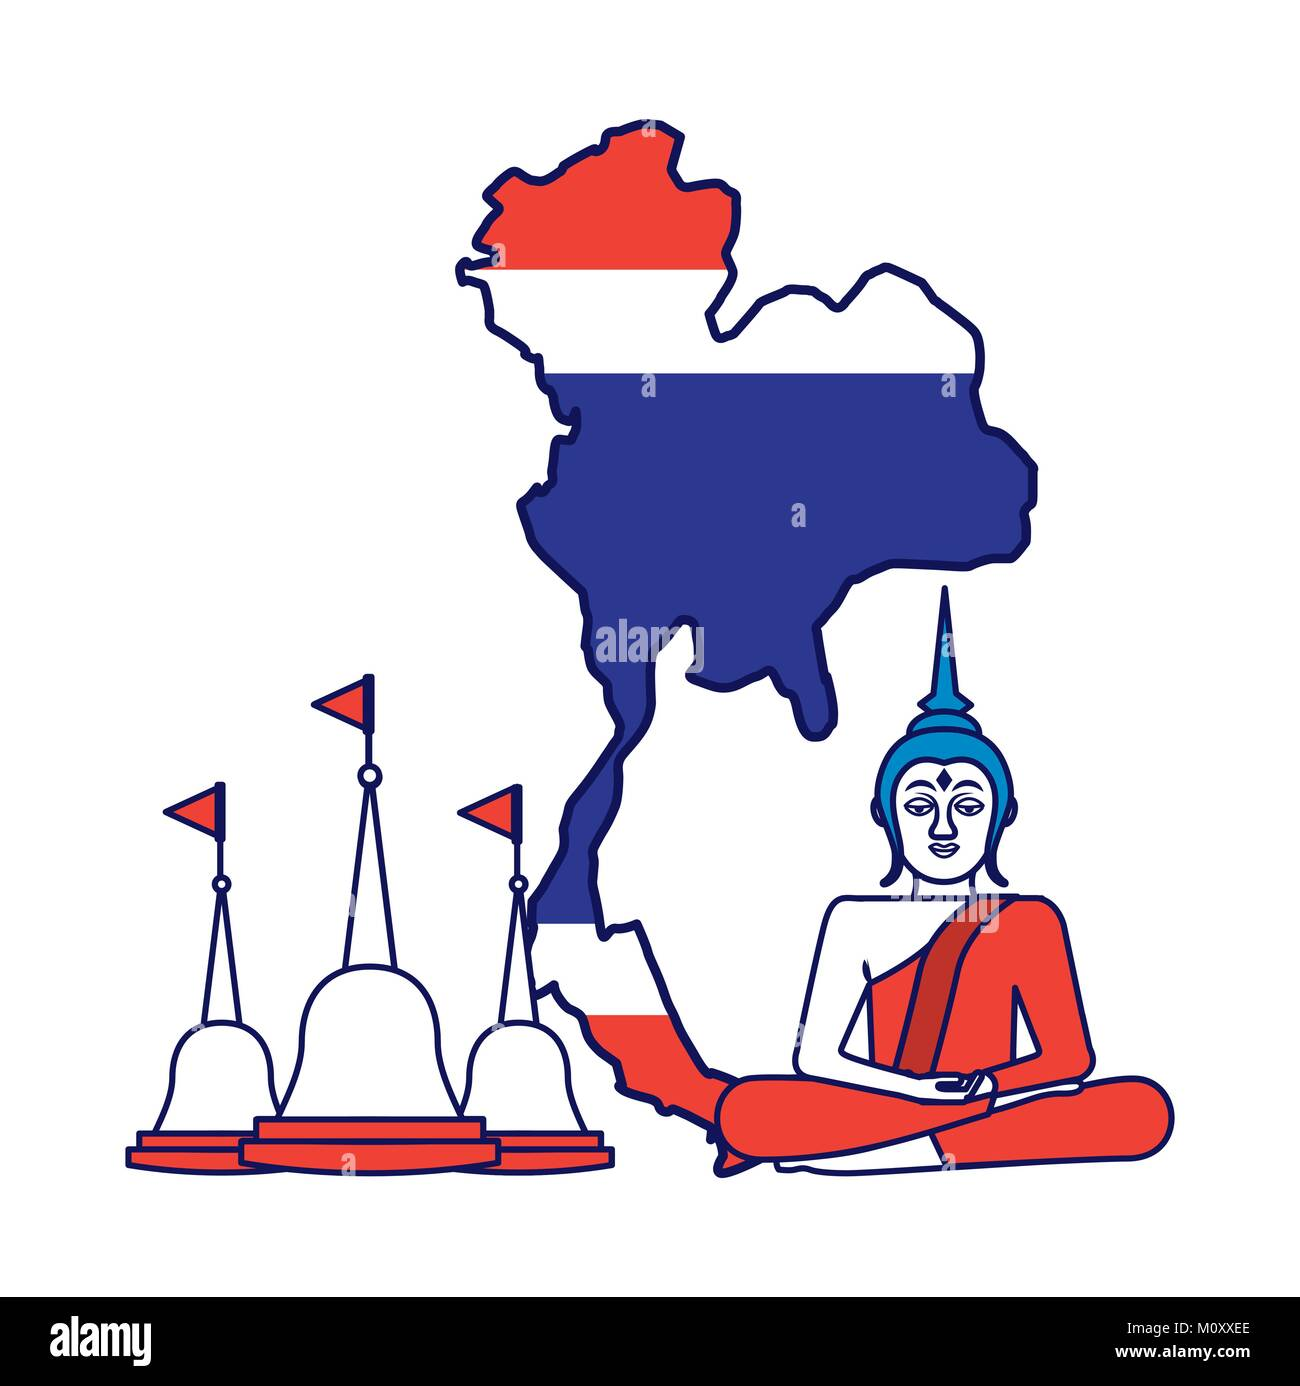 thailand concept buddha temple flag map - Stock Image